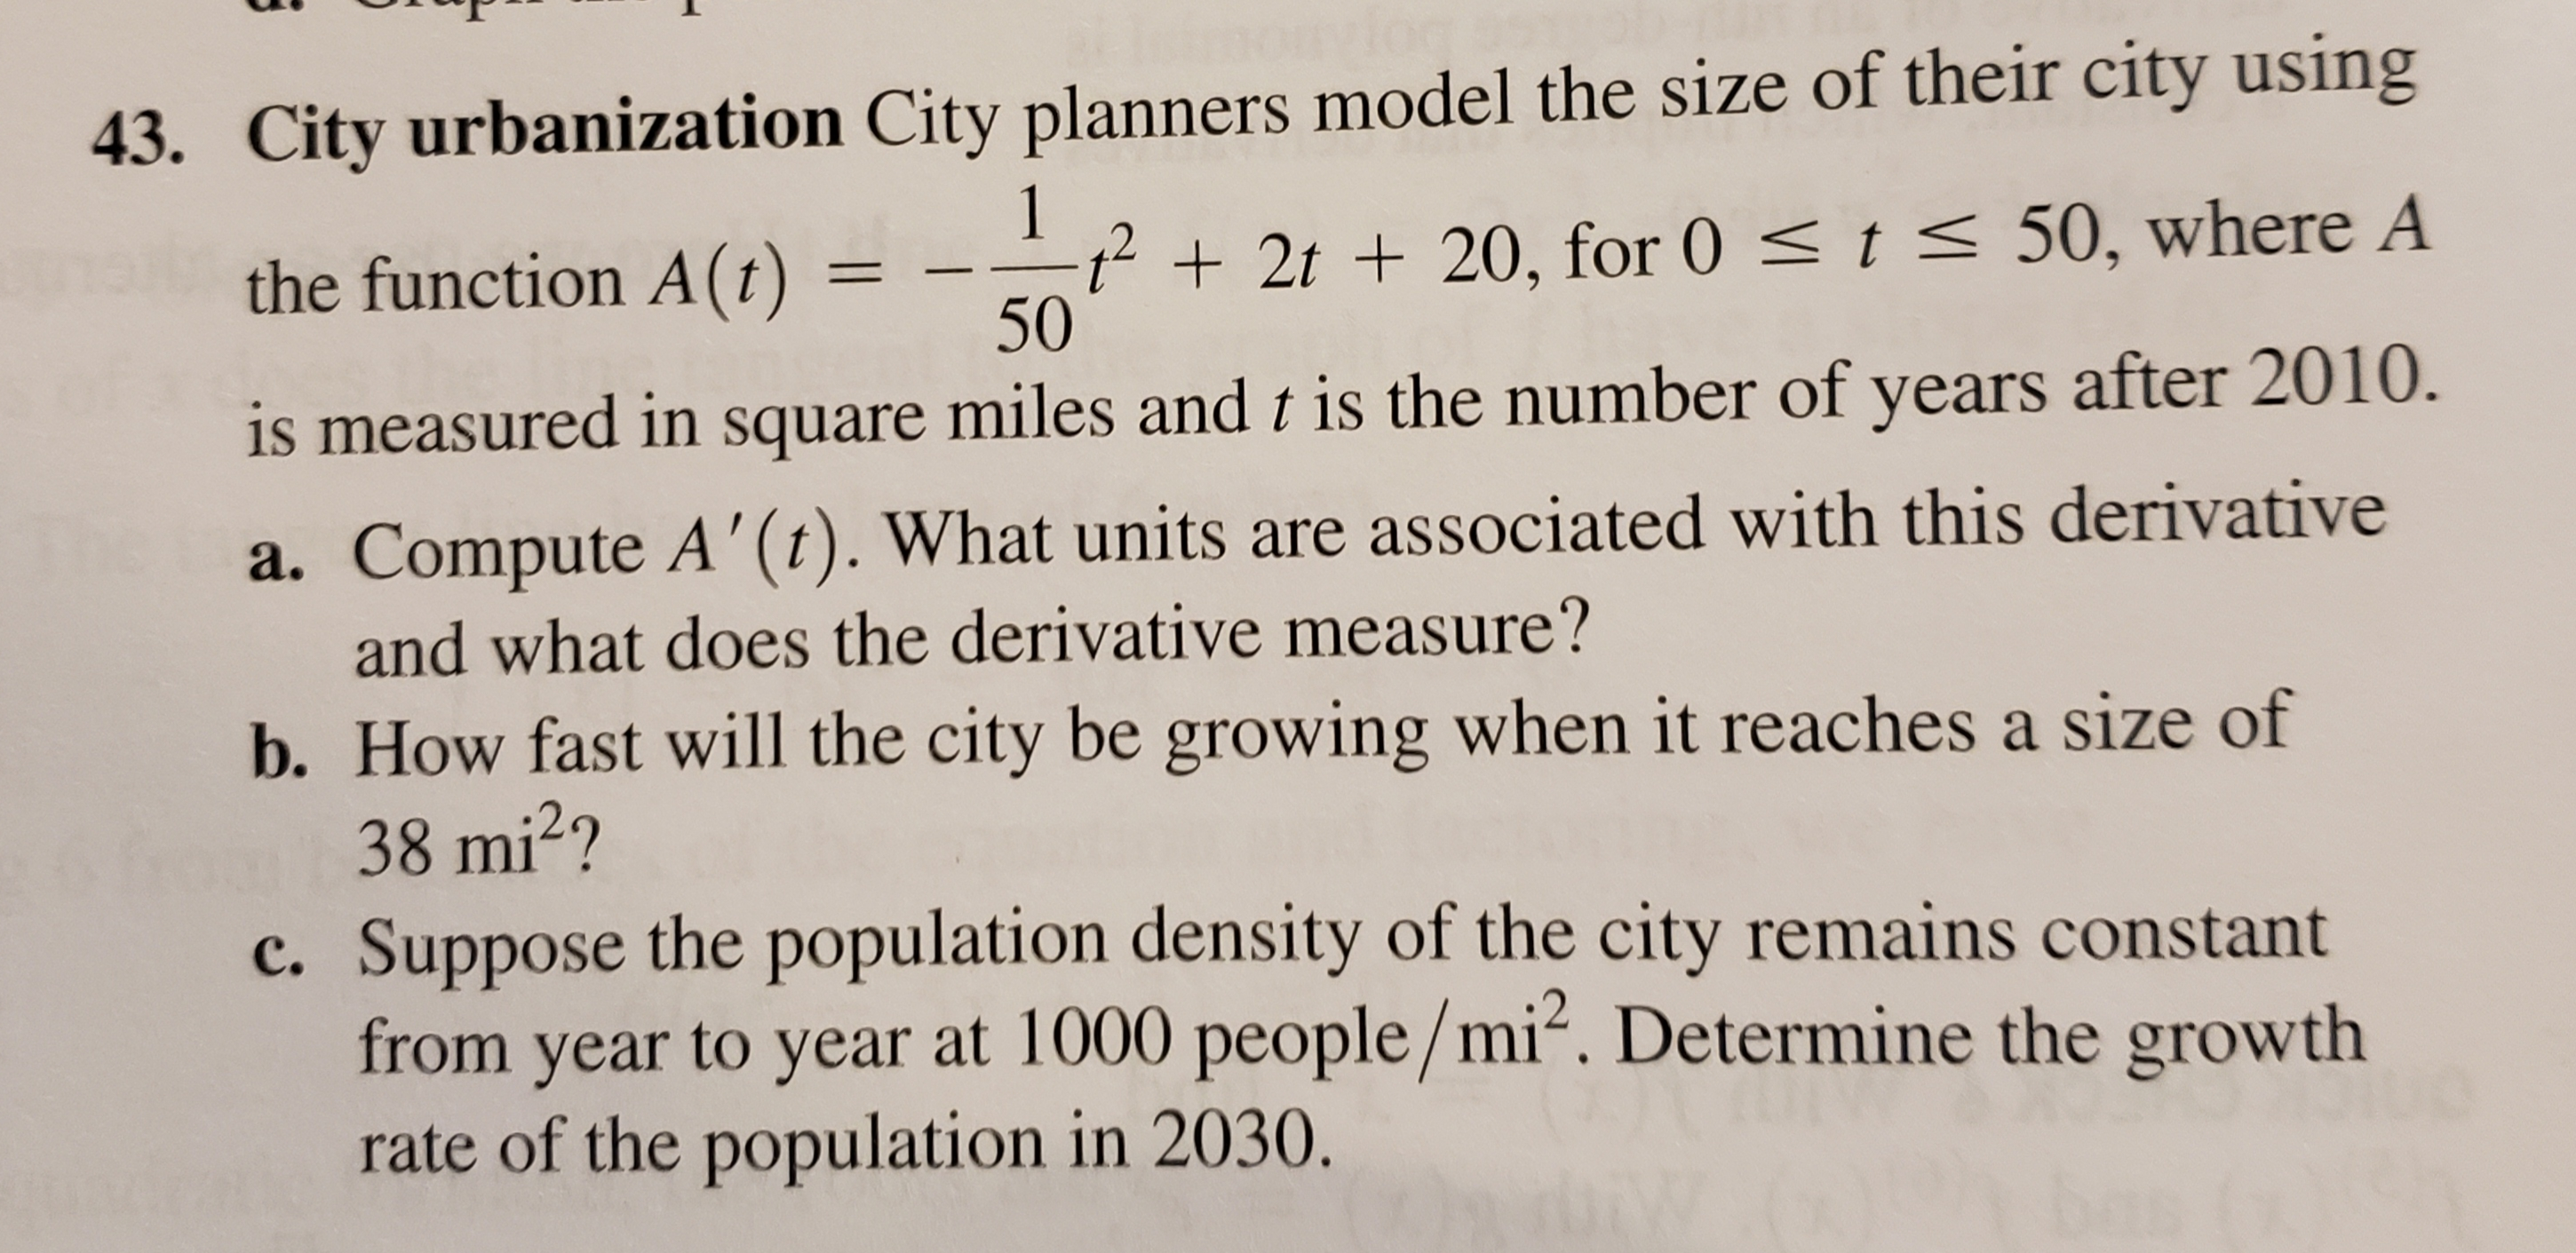 43. City urbanization City planners model the size of their city using 1 t<50, where A t2t20, for 0 50 the function A(t) is measured in square miles and t is the number of years after 2010. a. Compute A'(t). What units are associated with this derivative and what does the derivative measure? b. How fast will the city be growing when it reaches a size of 38 mi2? c. Suppose the population density of the city remains constant from year to year at 1000 people/mi2. Determine the growth rate of the population in 2030.